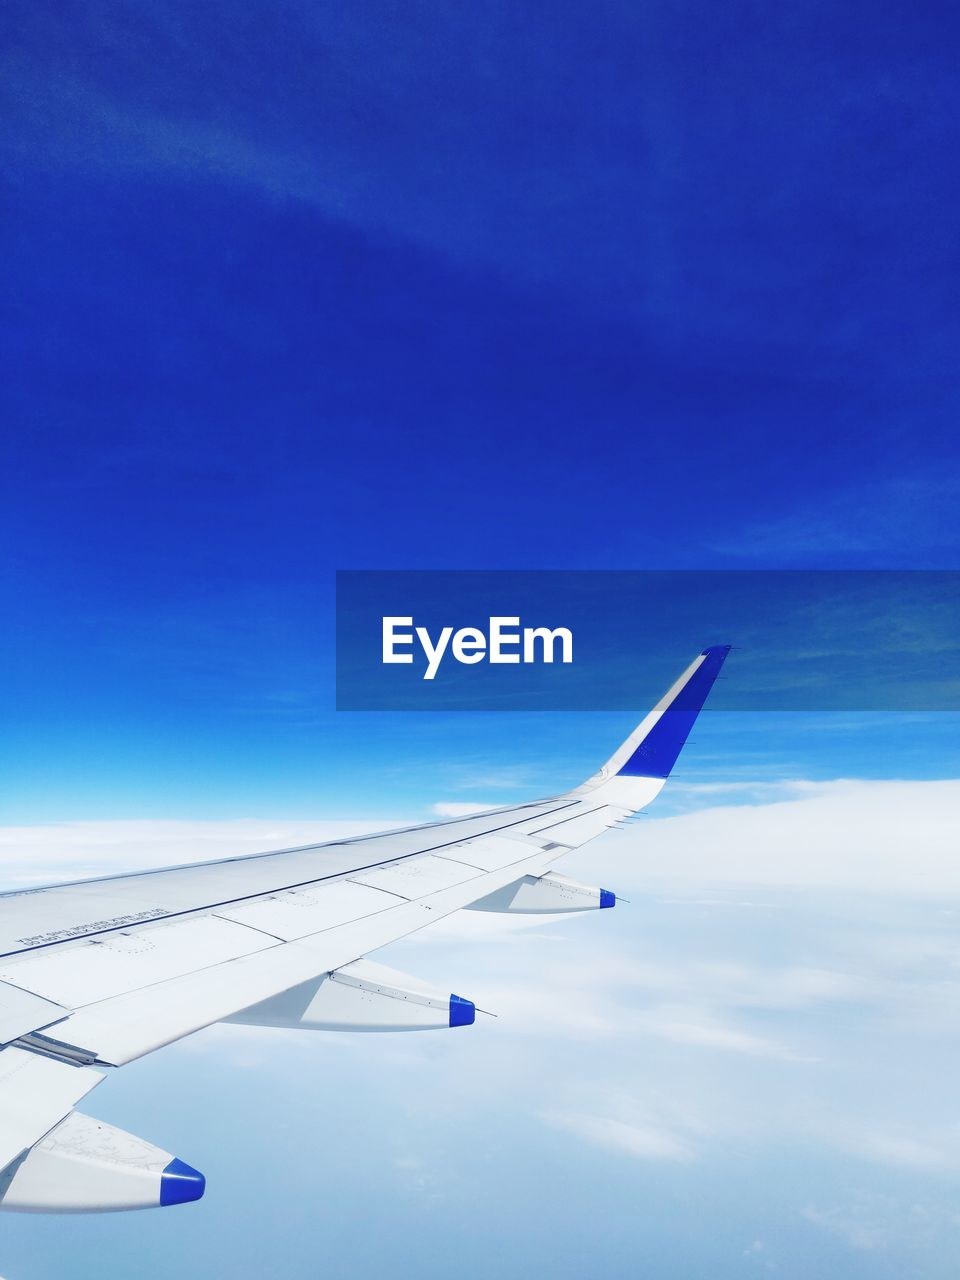 airplane, sky, air vehicle, aircraft wing, transportation, mode of transportation, cloud - sky, travel, flying, blue, no people, nature, journey, day, mid-air, on the move, beauty in nature, scenics - nature, motion, outdoors, aerospace industry, meteorology